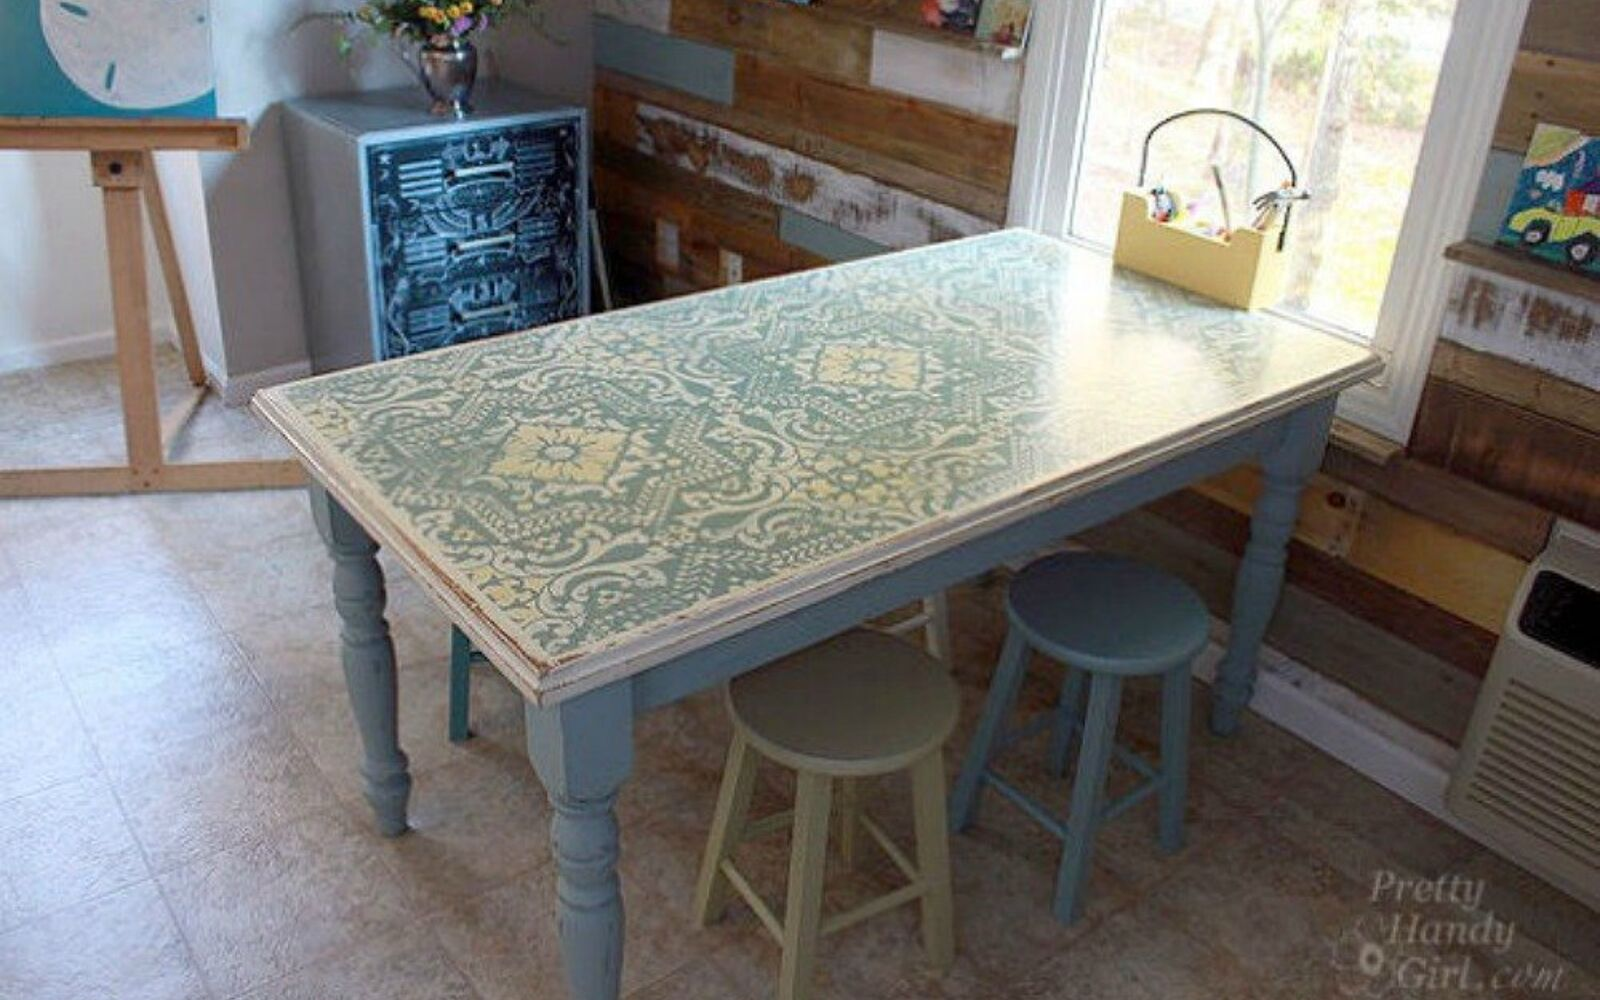 s 14 glamorous ways to upgrade your home using stencils, home decor, Turn a dumpster table into a farmhouse beauty